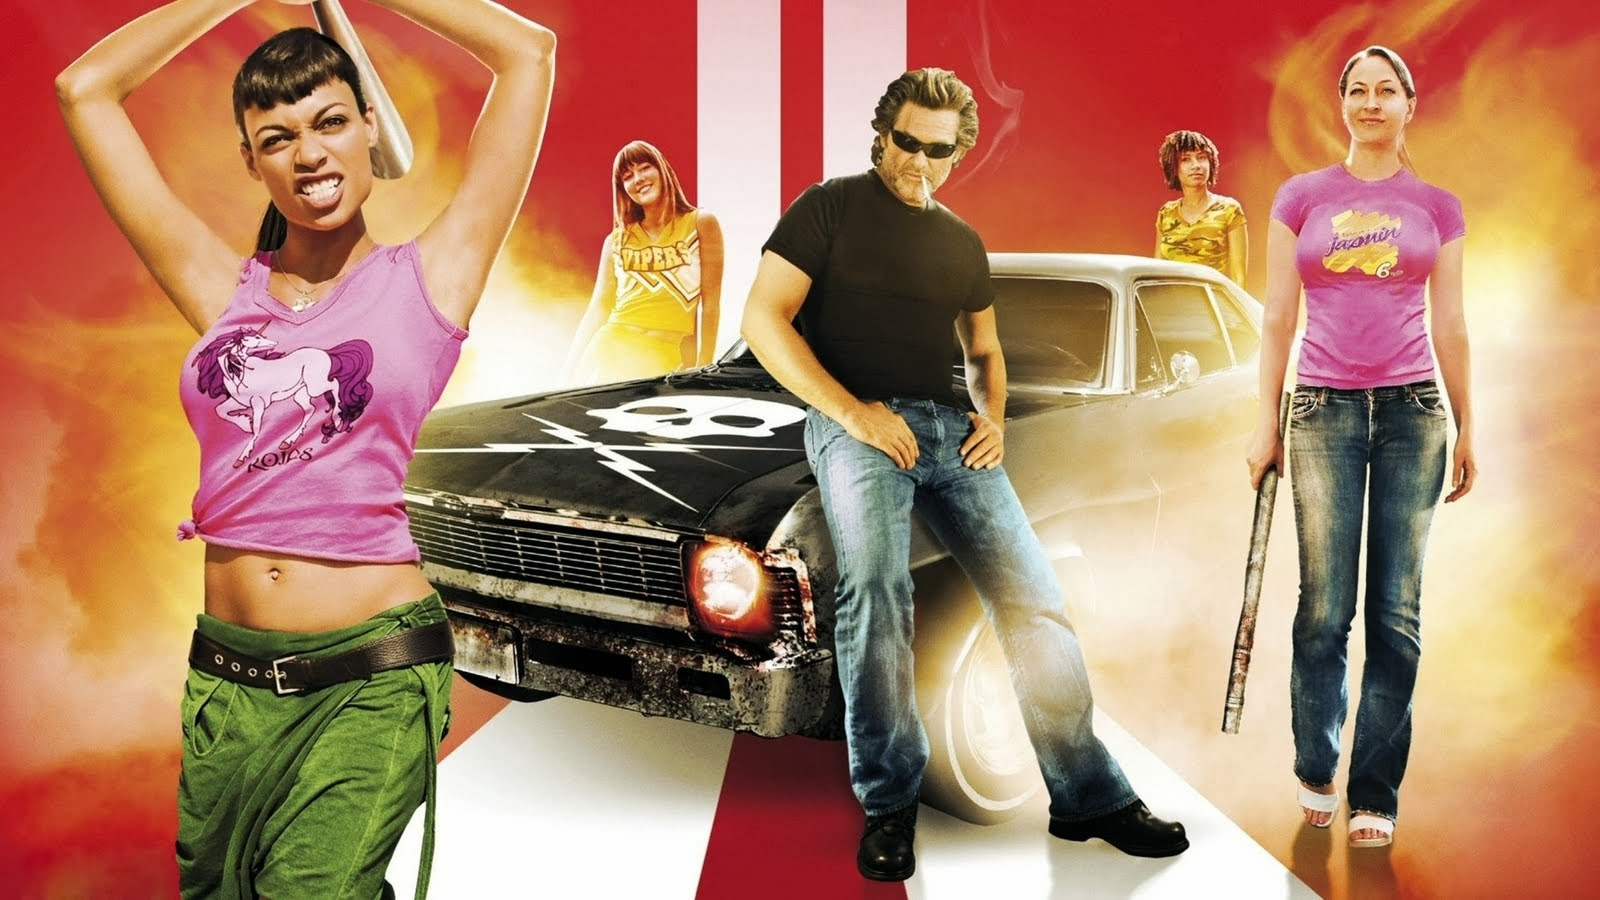 death proof soundtrack free download